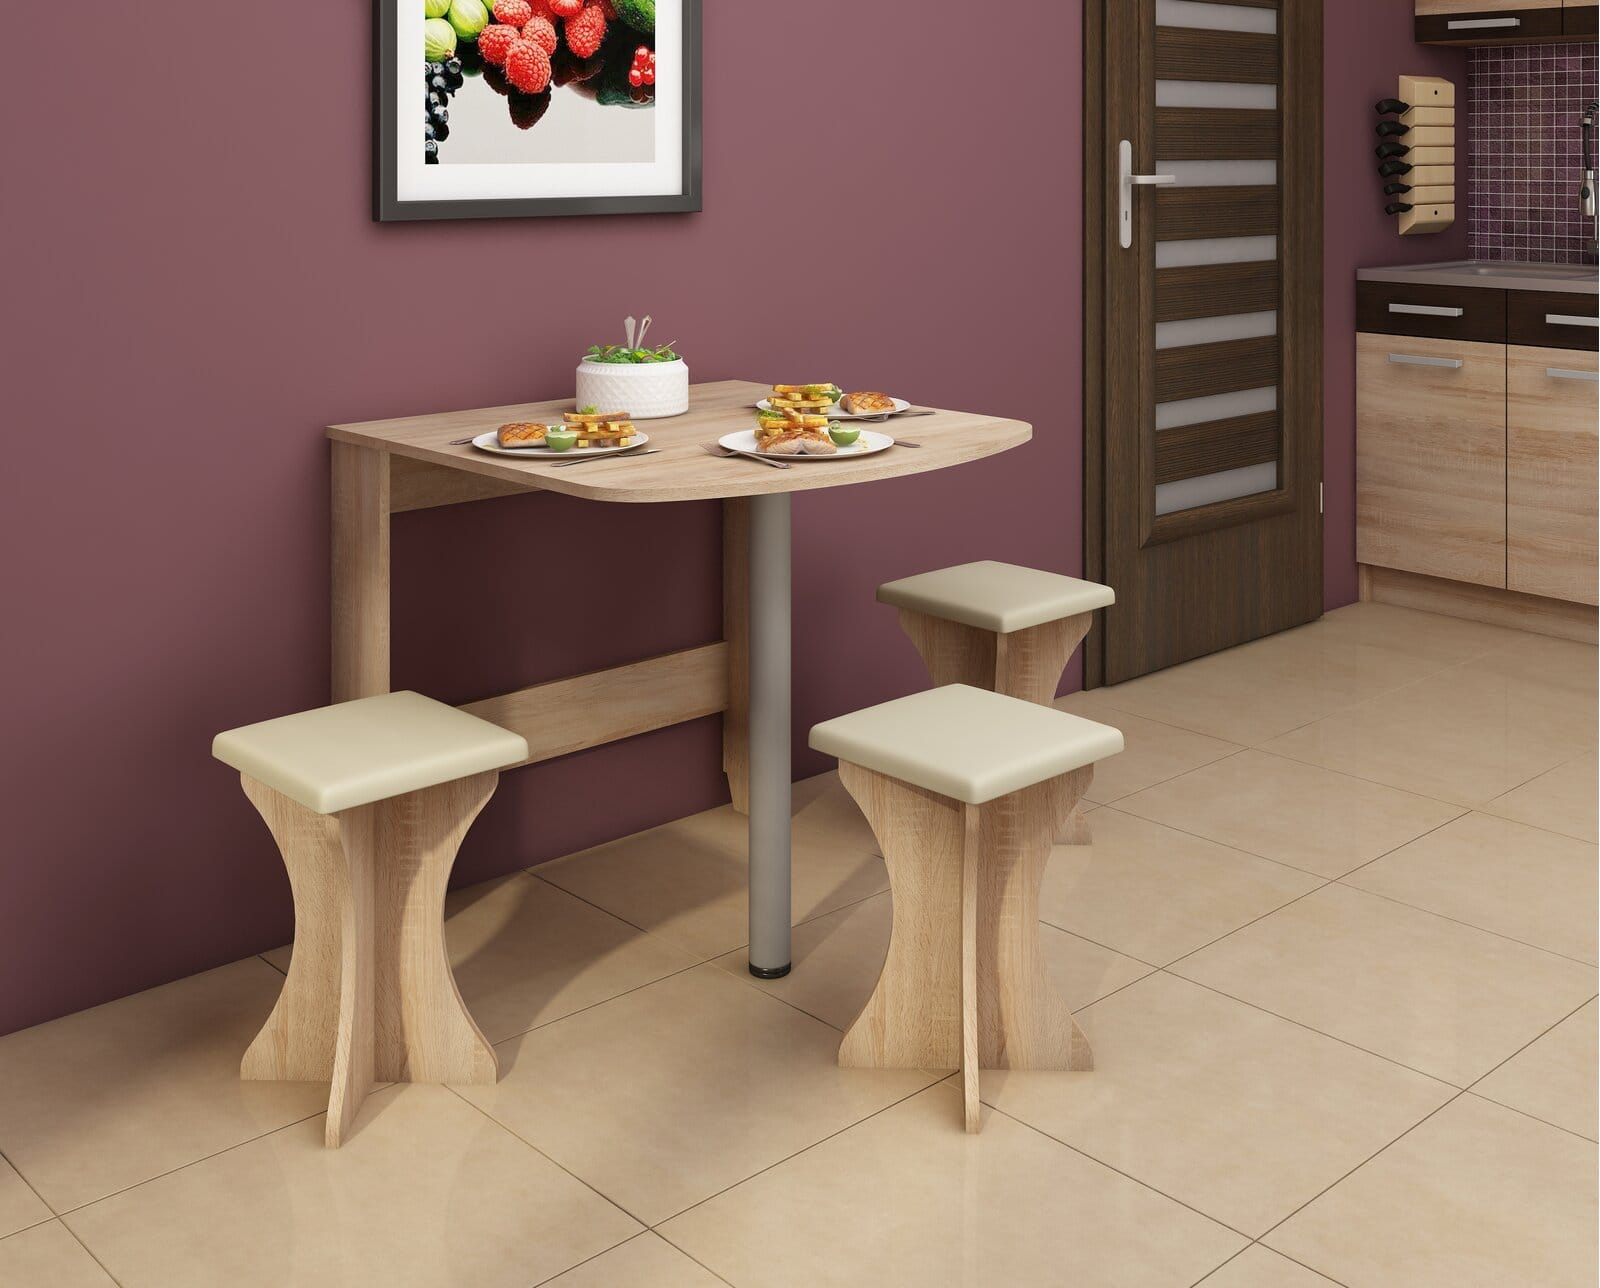 Maximize Space in Your Kitchen With a Drop Leaf Dining Table